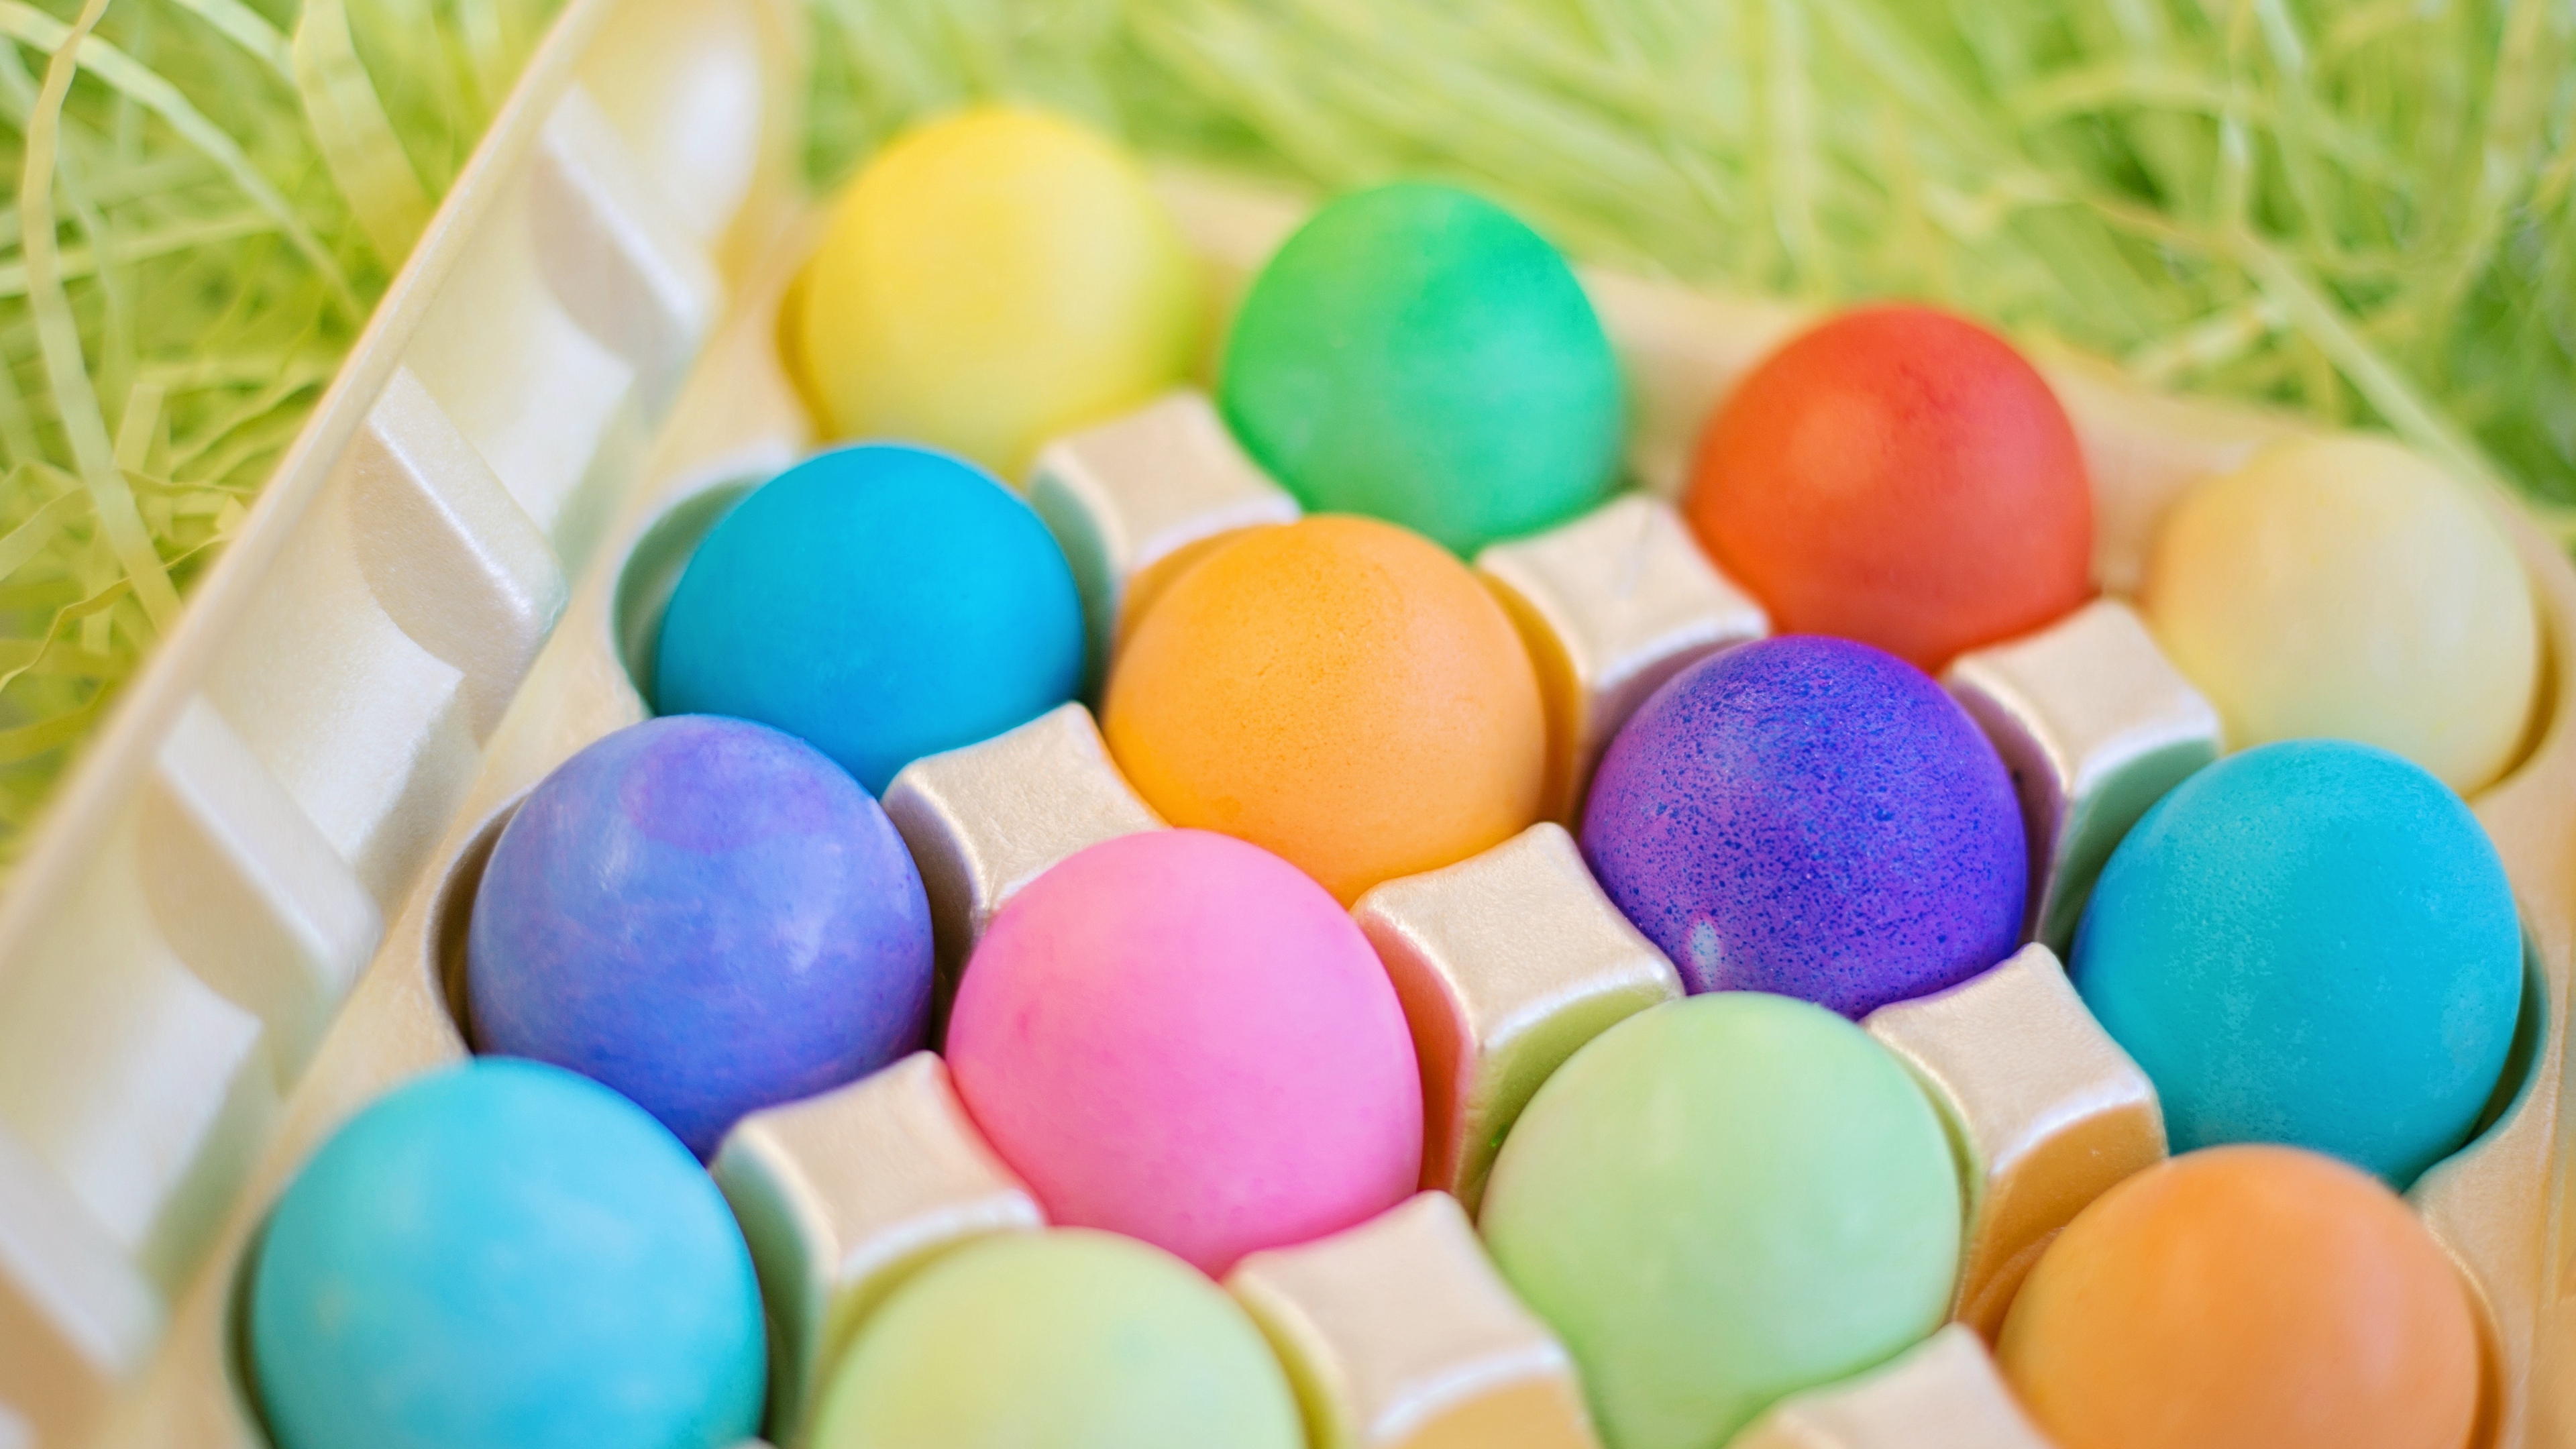 easter eggs colorful 4k 1538344667 - easter, eggs, colorful 4k - Eggs, Easter, Colorful